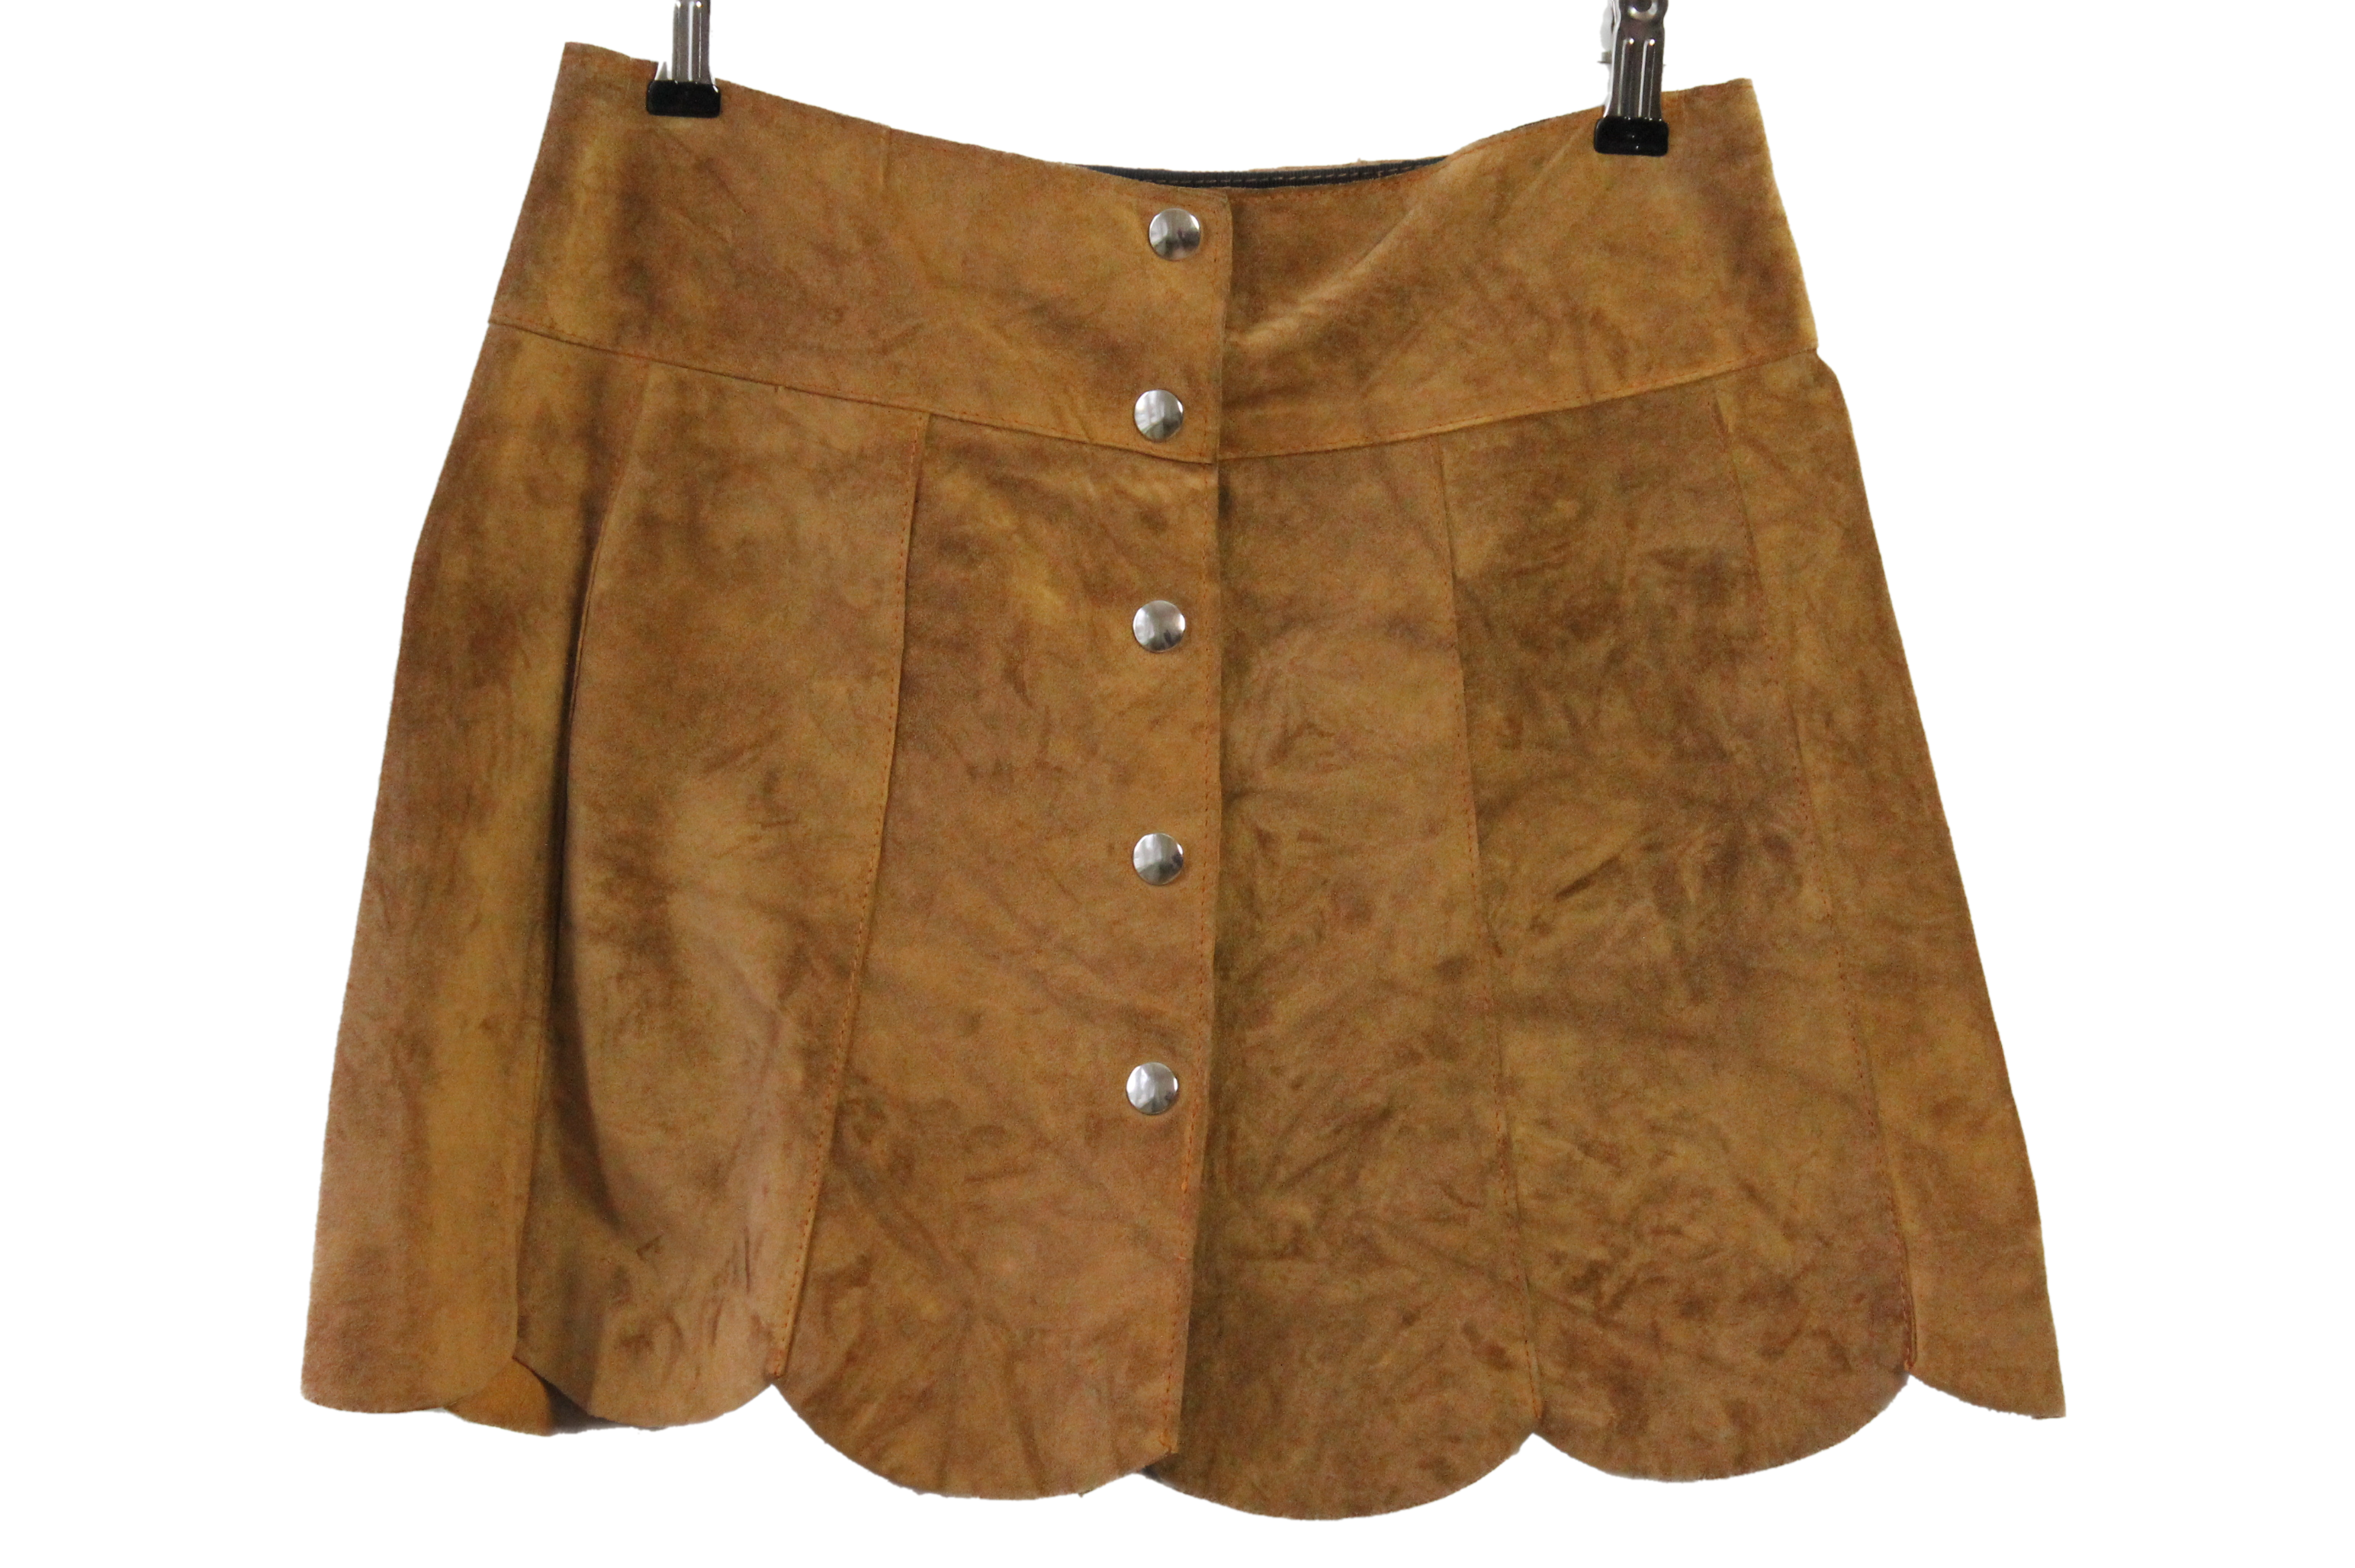 Suede A-line mini skirt size S